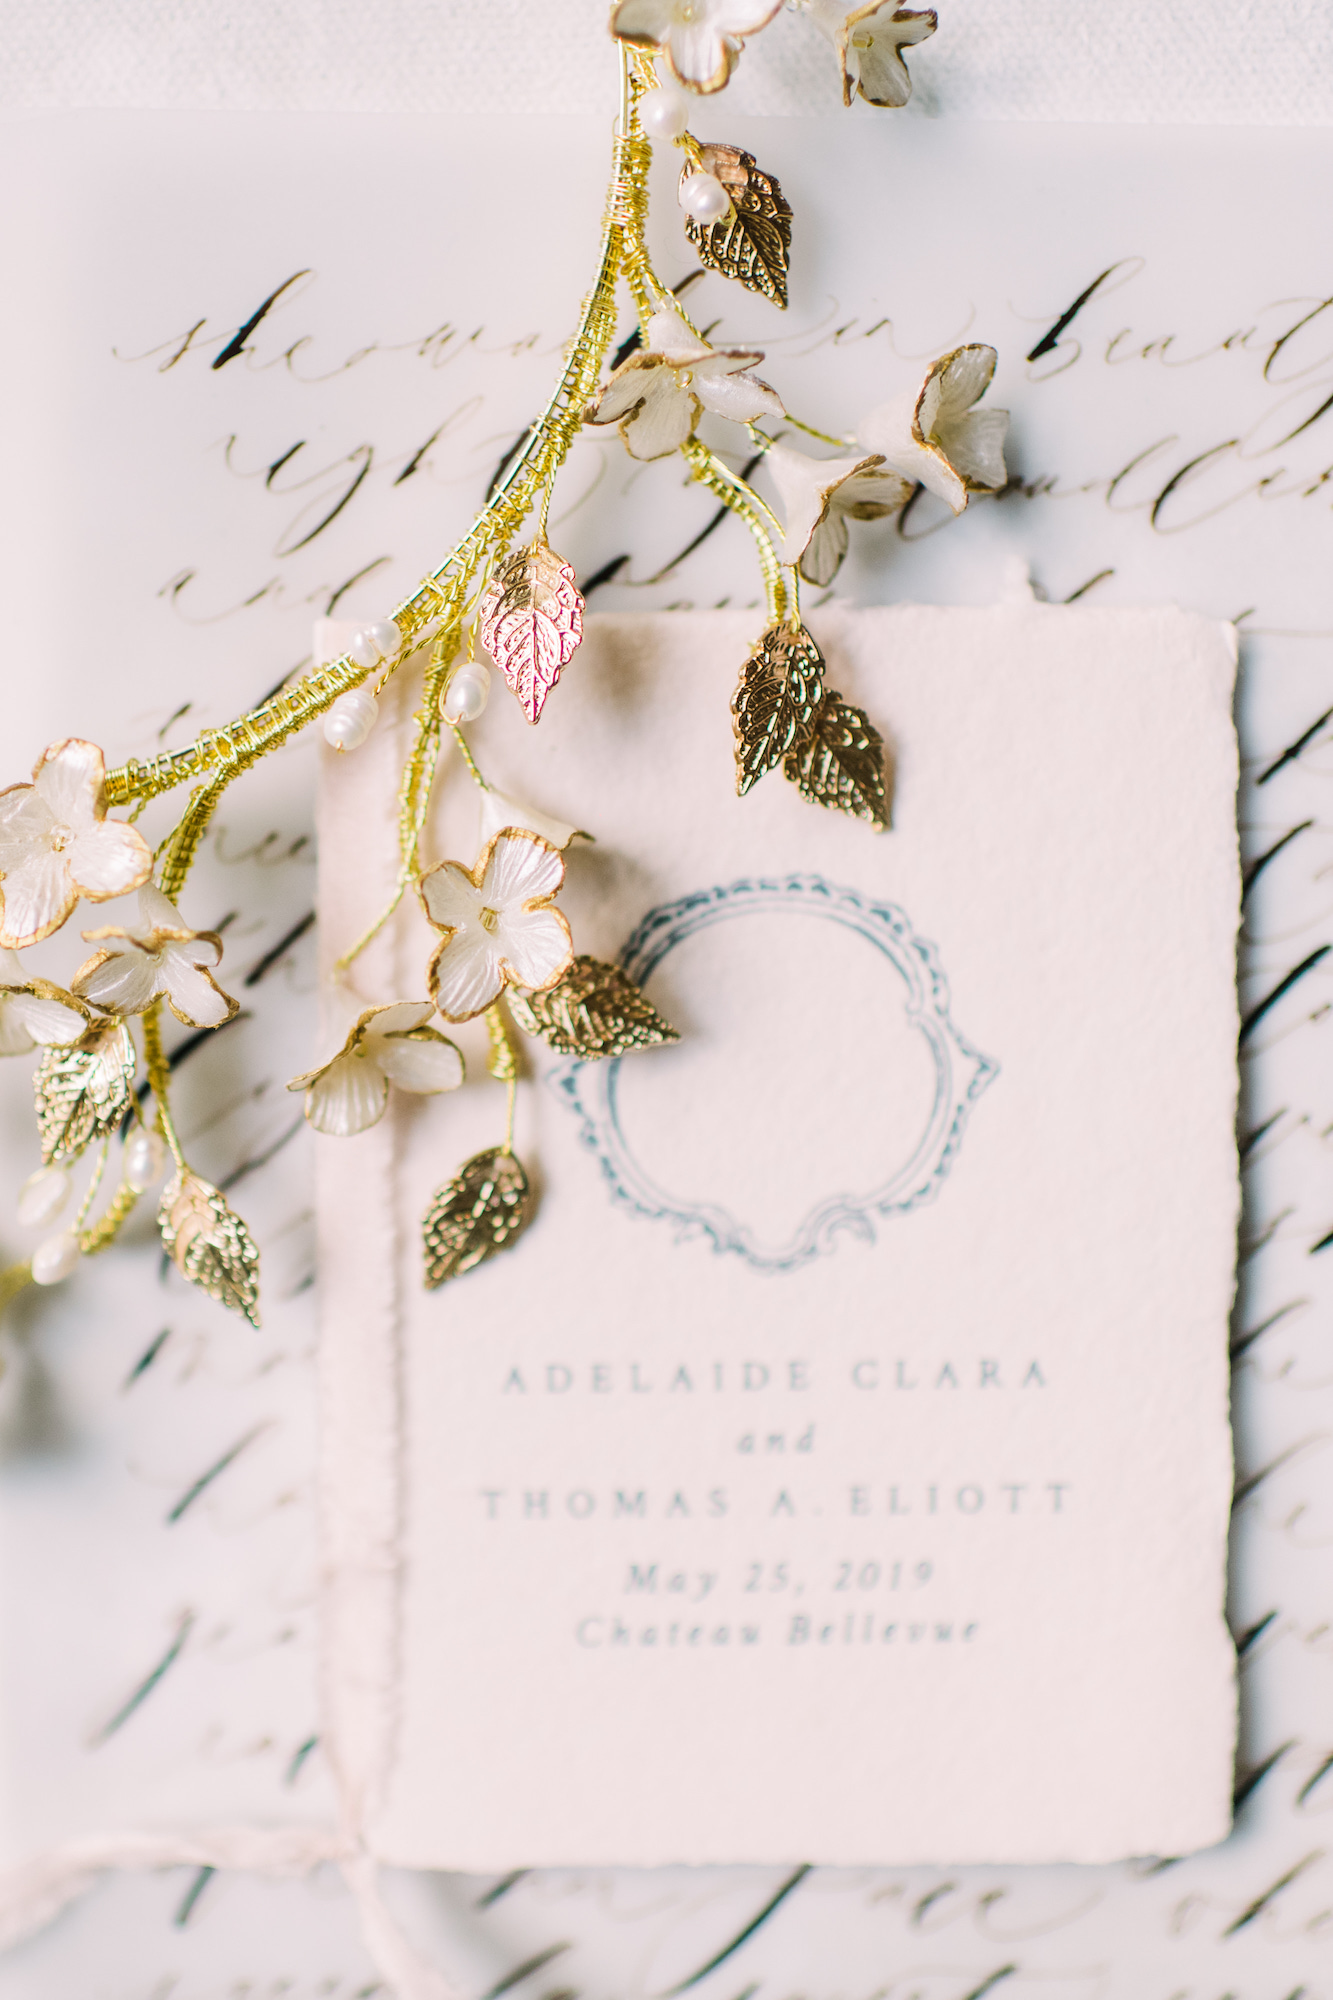 Jade-Magnolia-Workshop-Sojourn-Weddings-Kaiti-Moyers-Photography-007.jpg